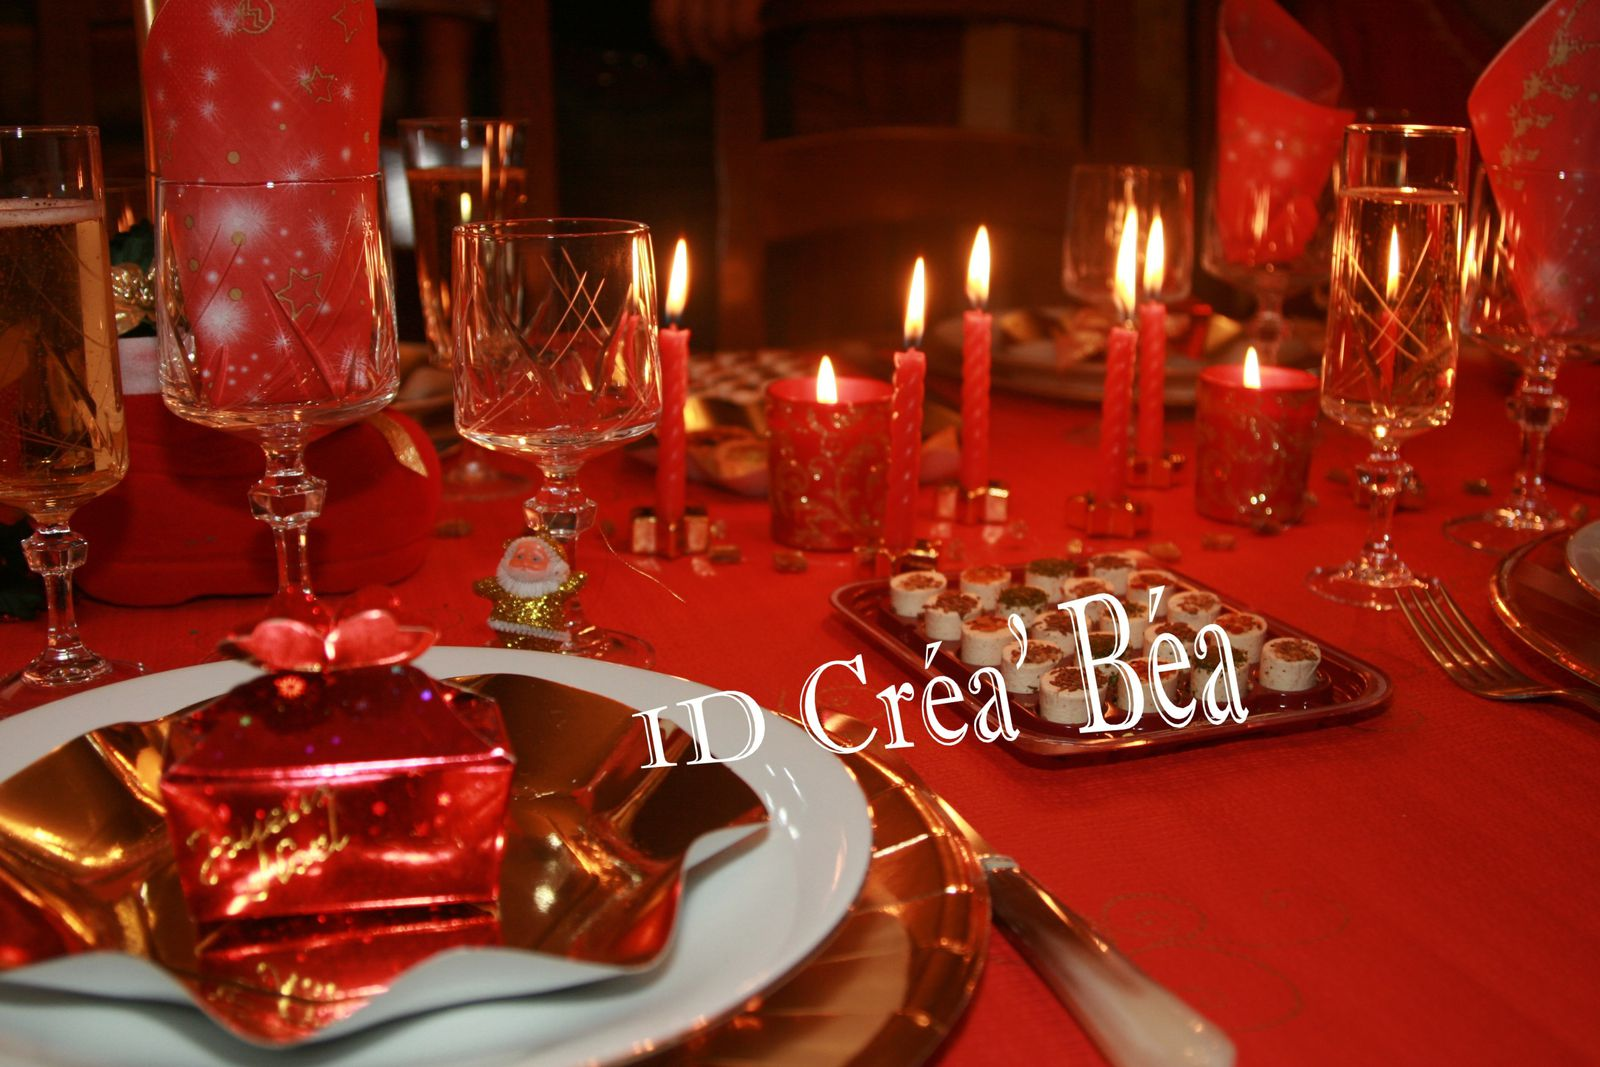 Album table no l rouge et or id cr a 39 b a des cr ations - Decoration table de noel rouge et or ...